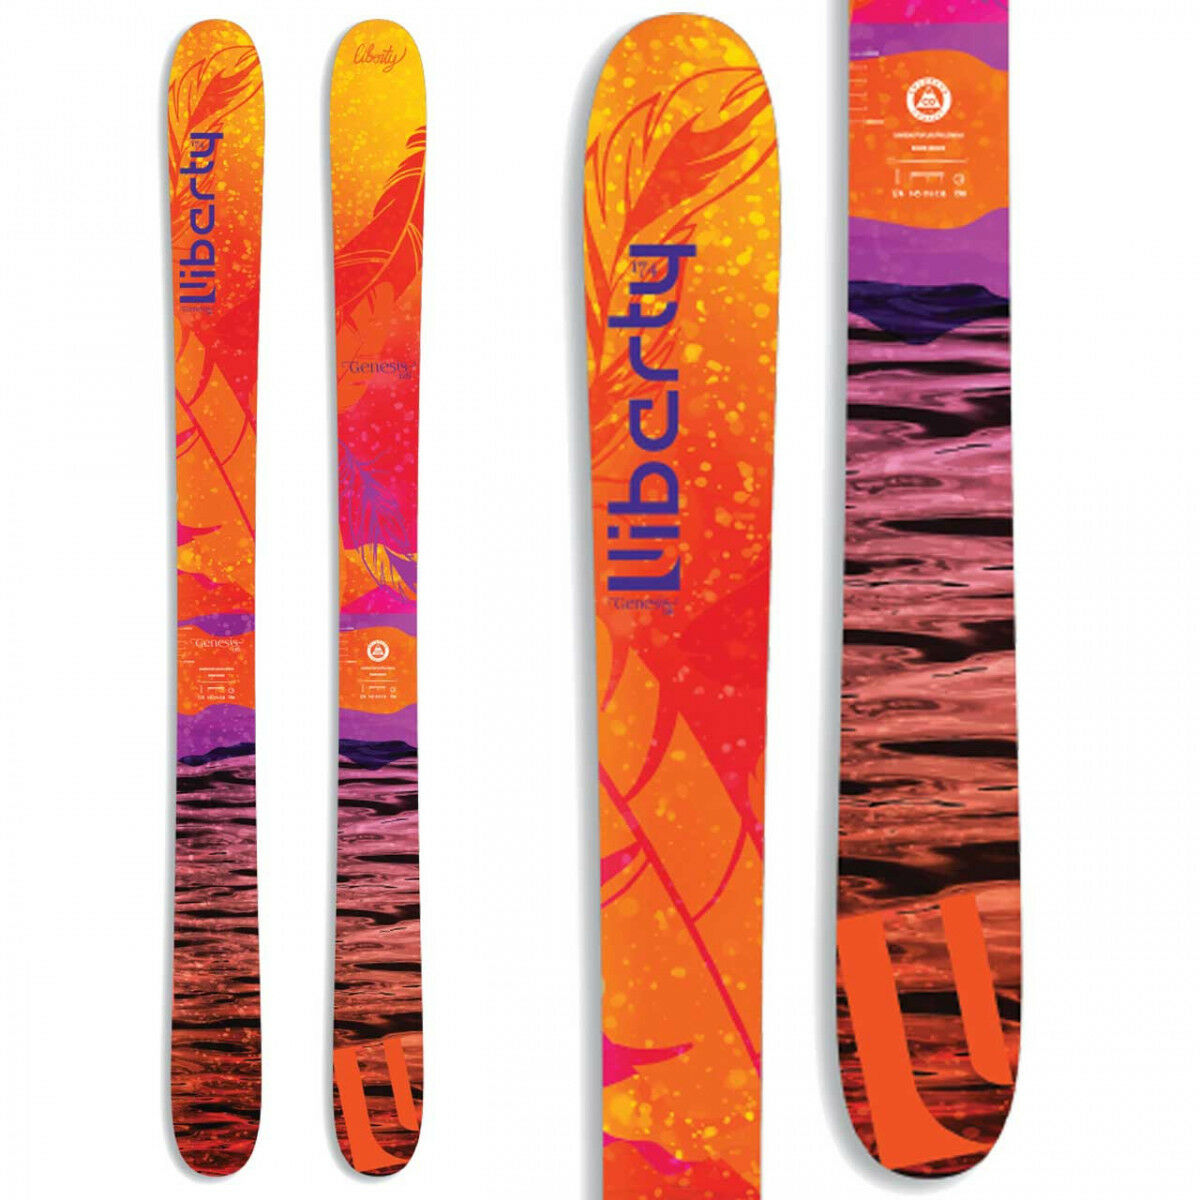 BRAND NEW  2018 LIBERTY GENESIS 116 WOMEN'S SKIS w SALOMON STH2 13 SAVE 50% OFF